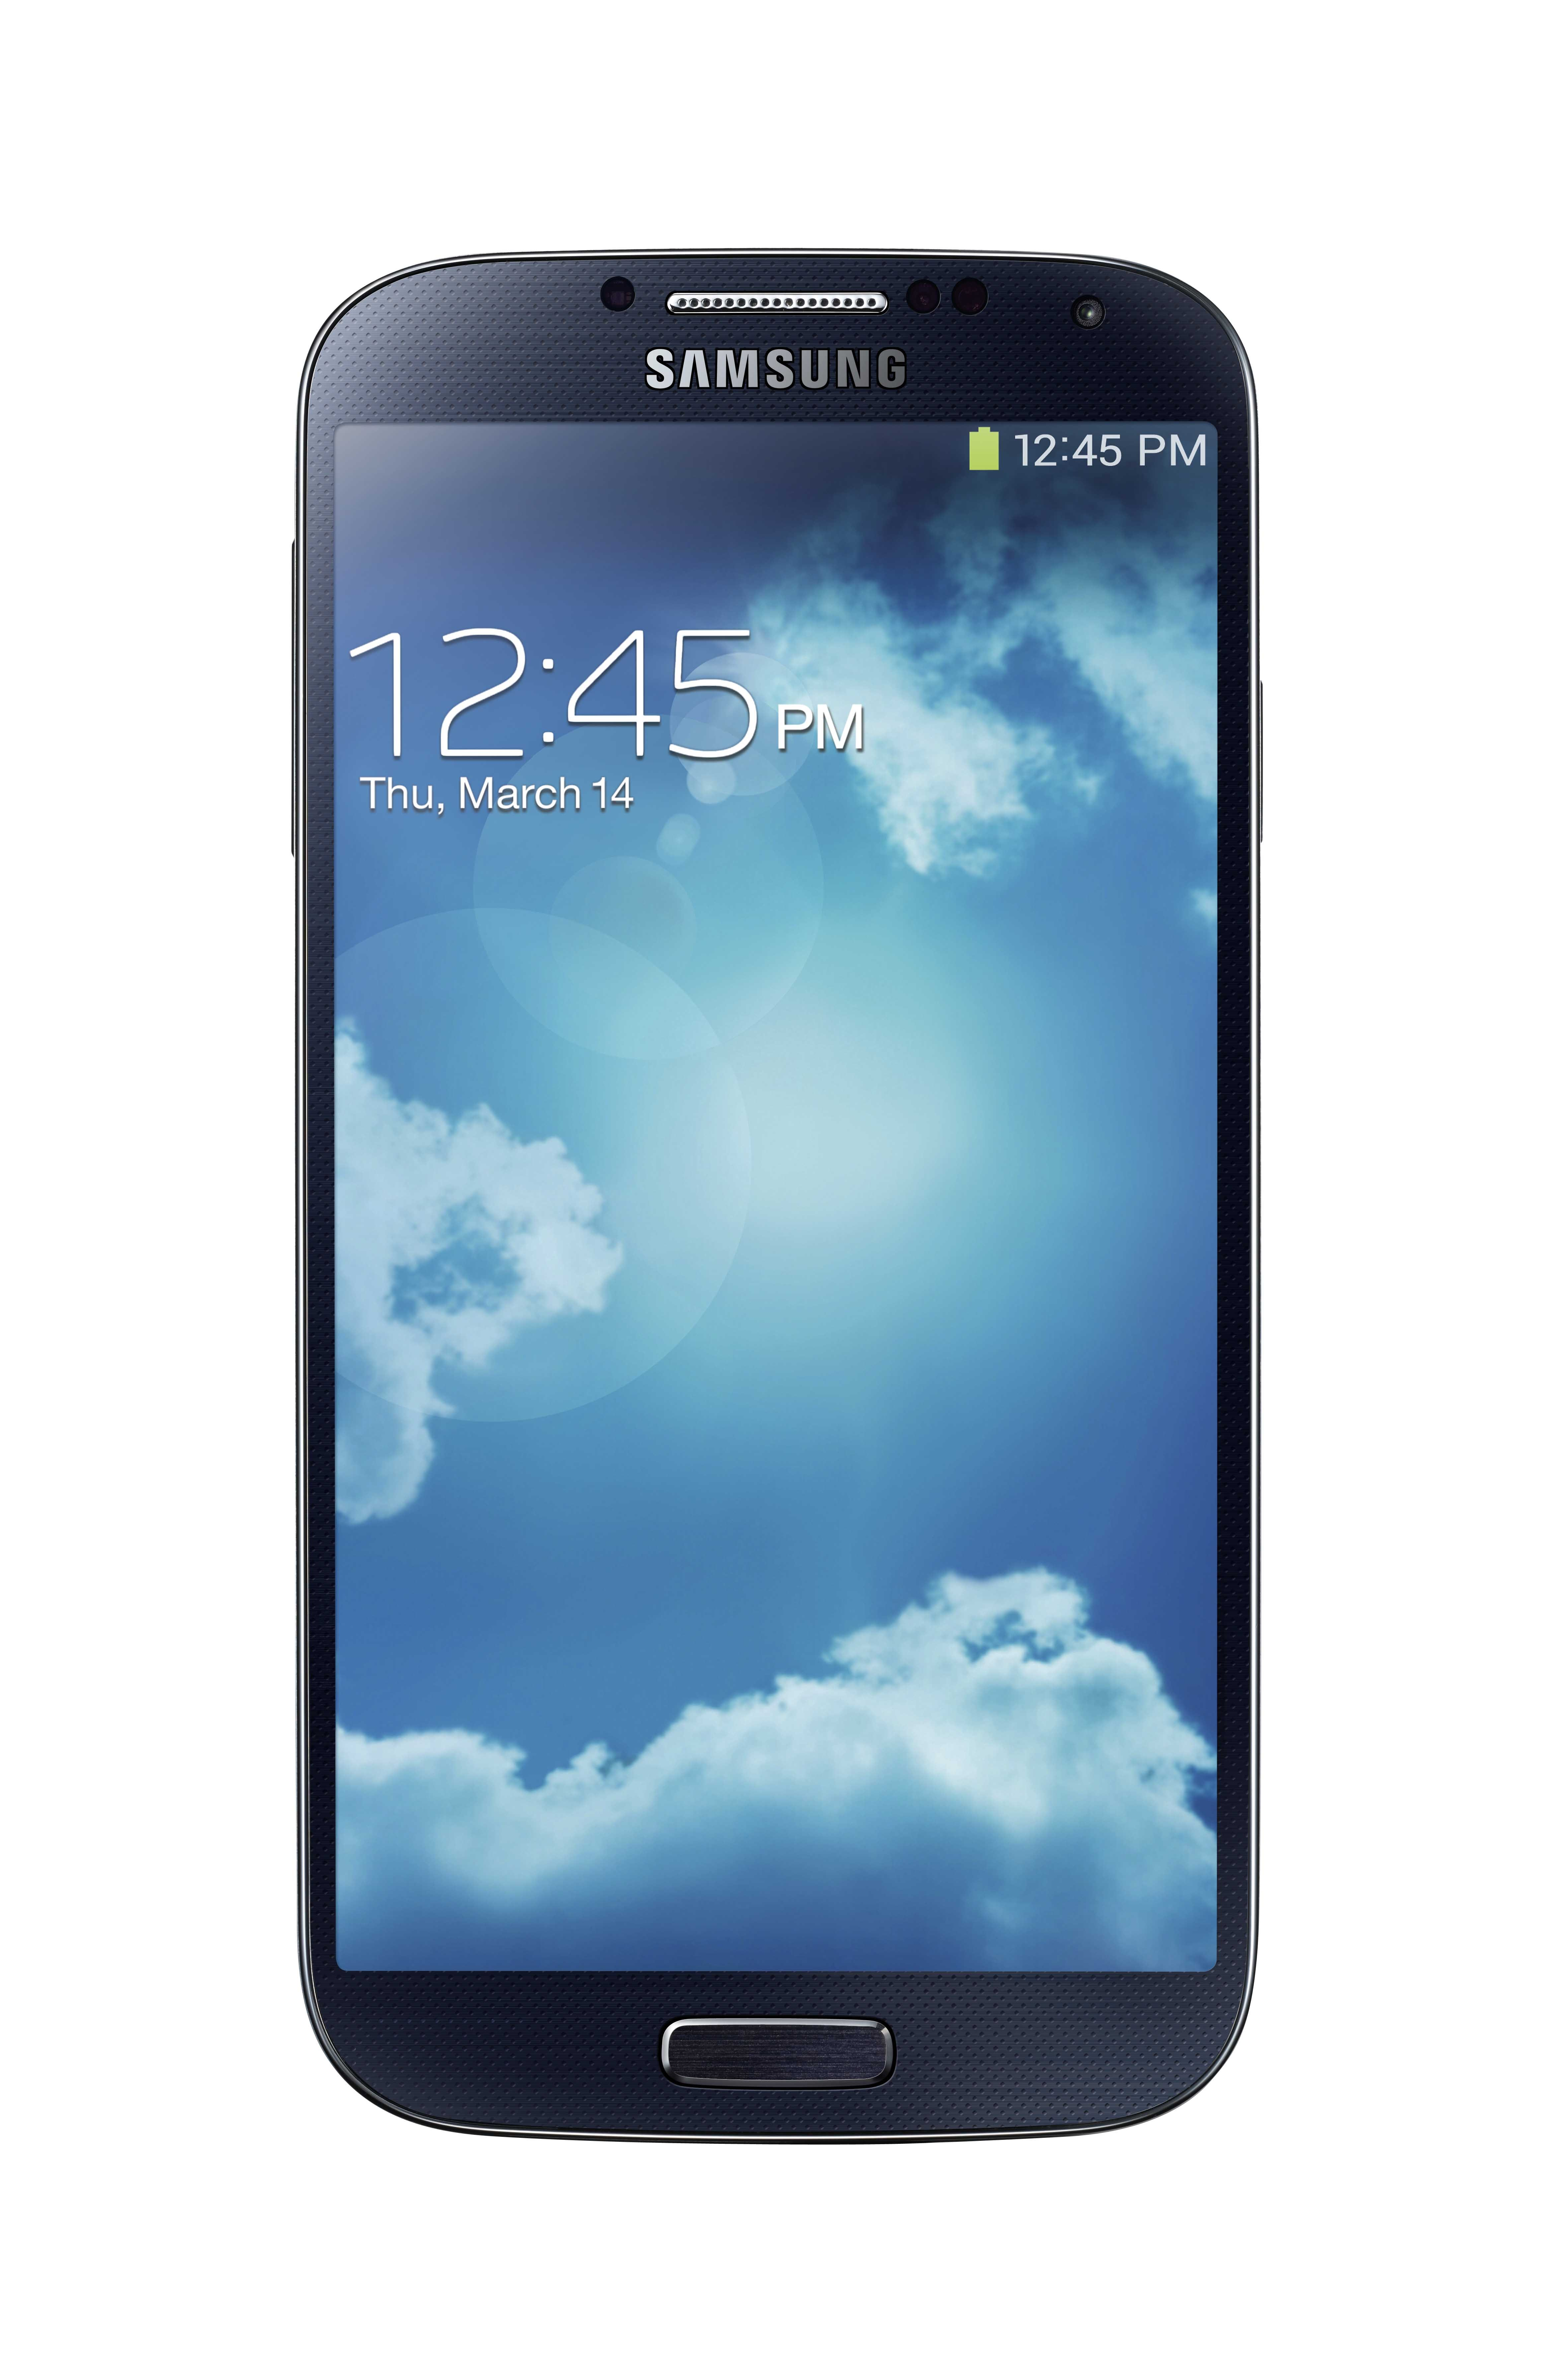 Staples announces the availability of the Samsung Galaxy(R) S 4, an innovative smartphone that lets users navigate their screen without even touching it, scroll through content simply by tilting it, and pauses recorded video when viewers look away from the screen. (Photo: Business Wire)